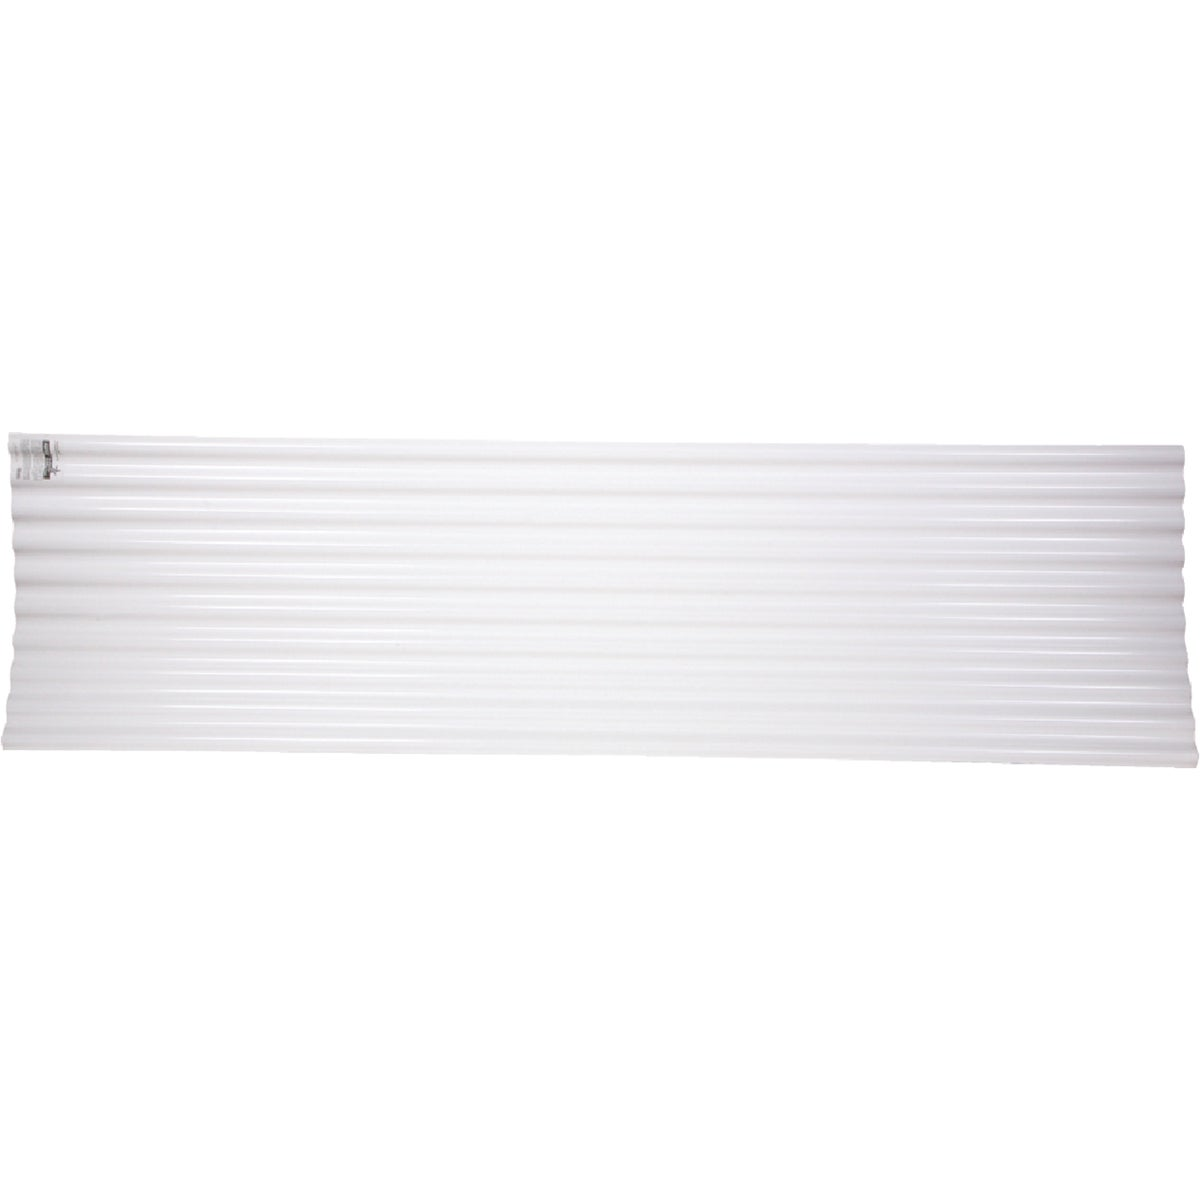 8' WHT CORGTD PVC PANEL - 120115 by Ofic North America